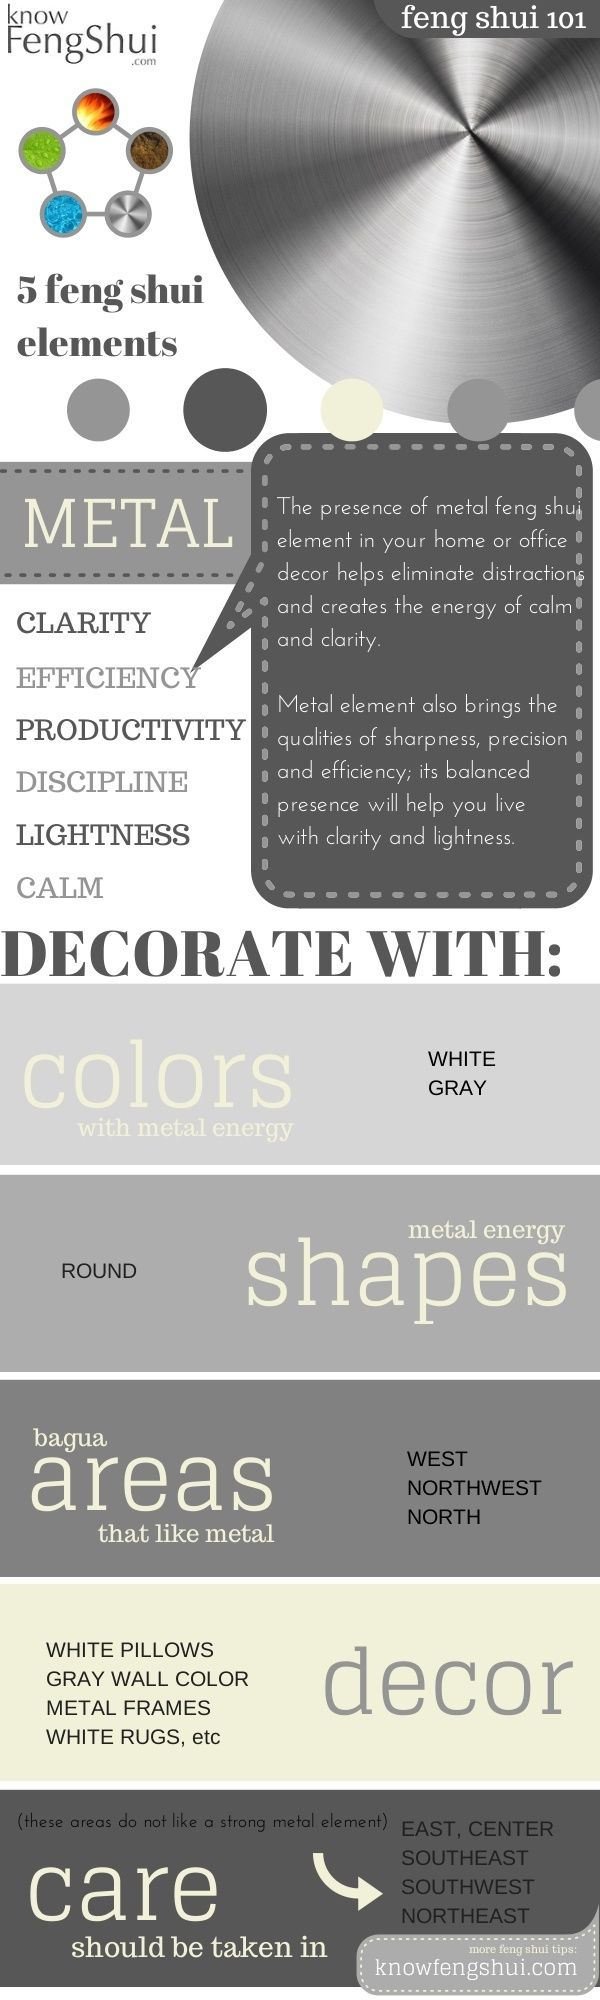 Easy feng shui decorating with the metal element: bring clarity, freshness  and ease into your space metal-feng-shui-element-decor-infographic